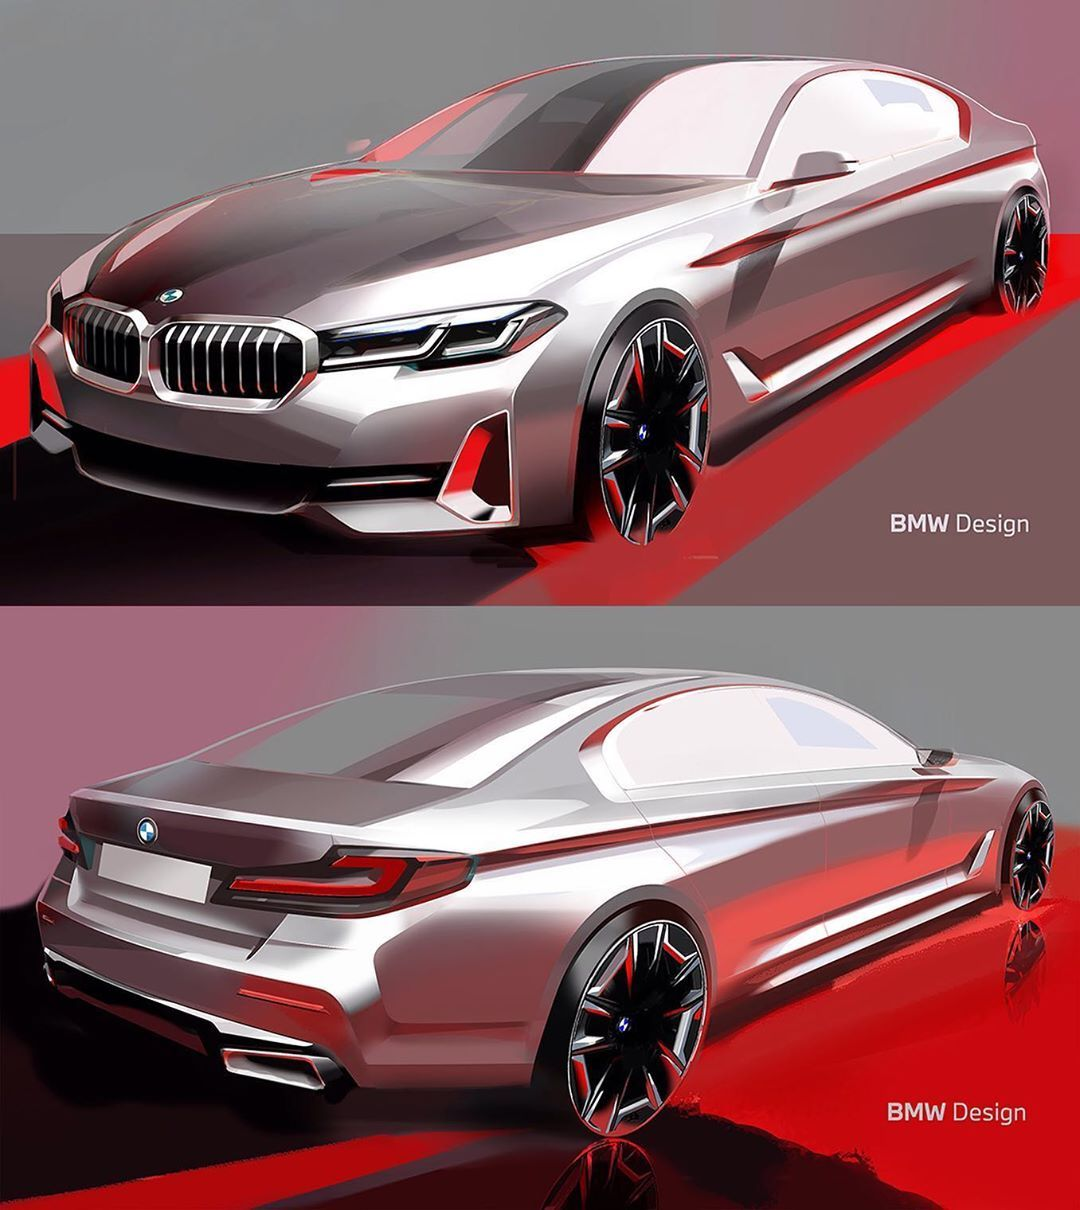 "Car Design World on Instagram: ""2021 BMW 5-Series official sketches by Robert Forest  #cardesign #car #design #carsketch #sketch #bmw #bmw5series #bmwclub #bmwfan"""